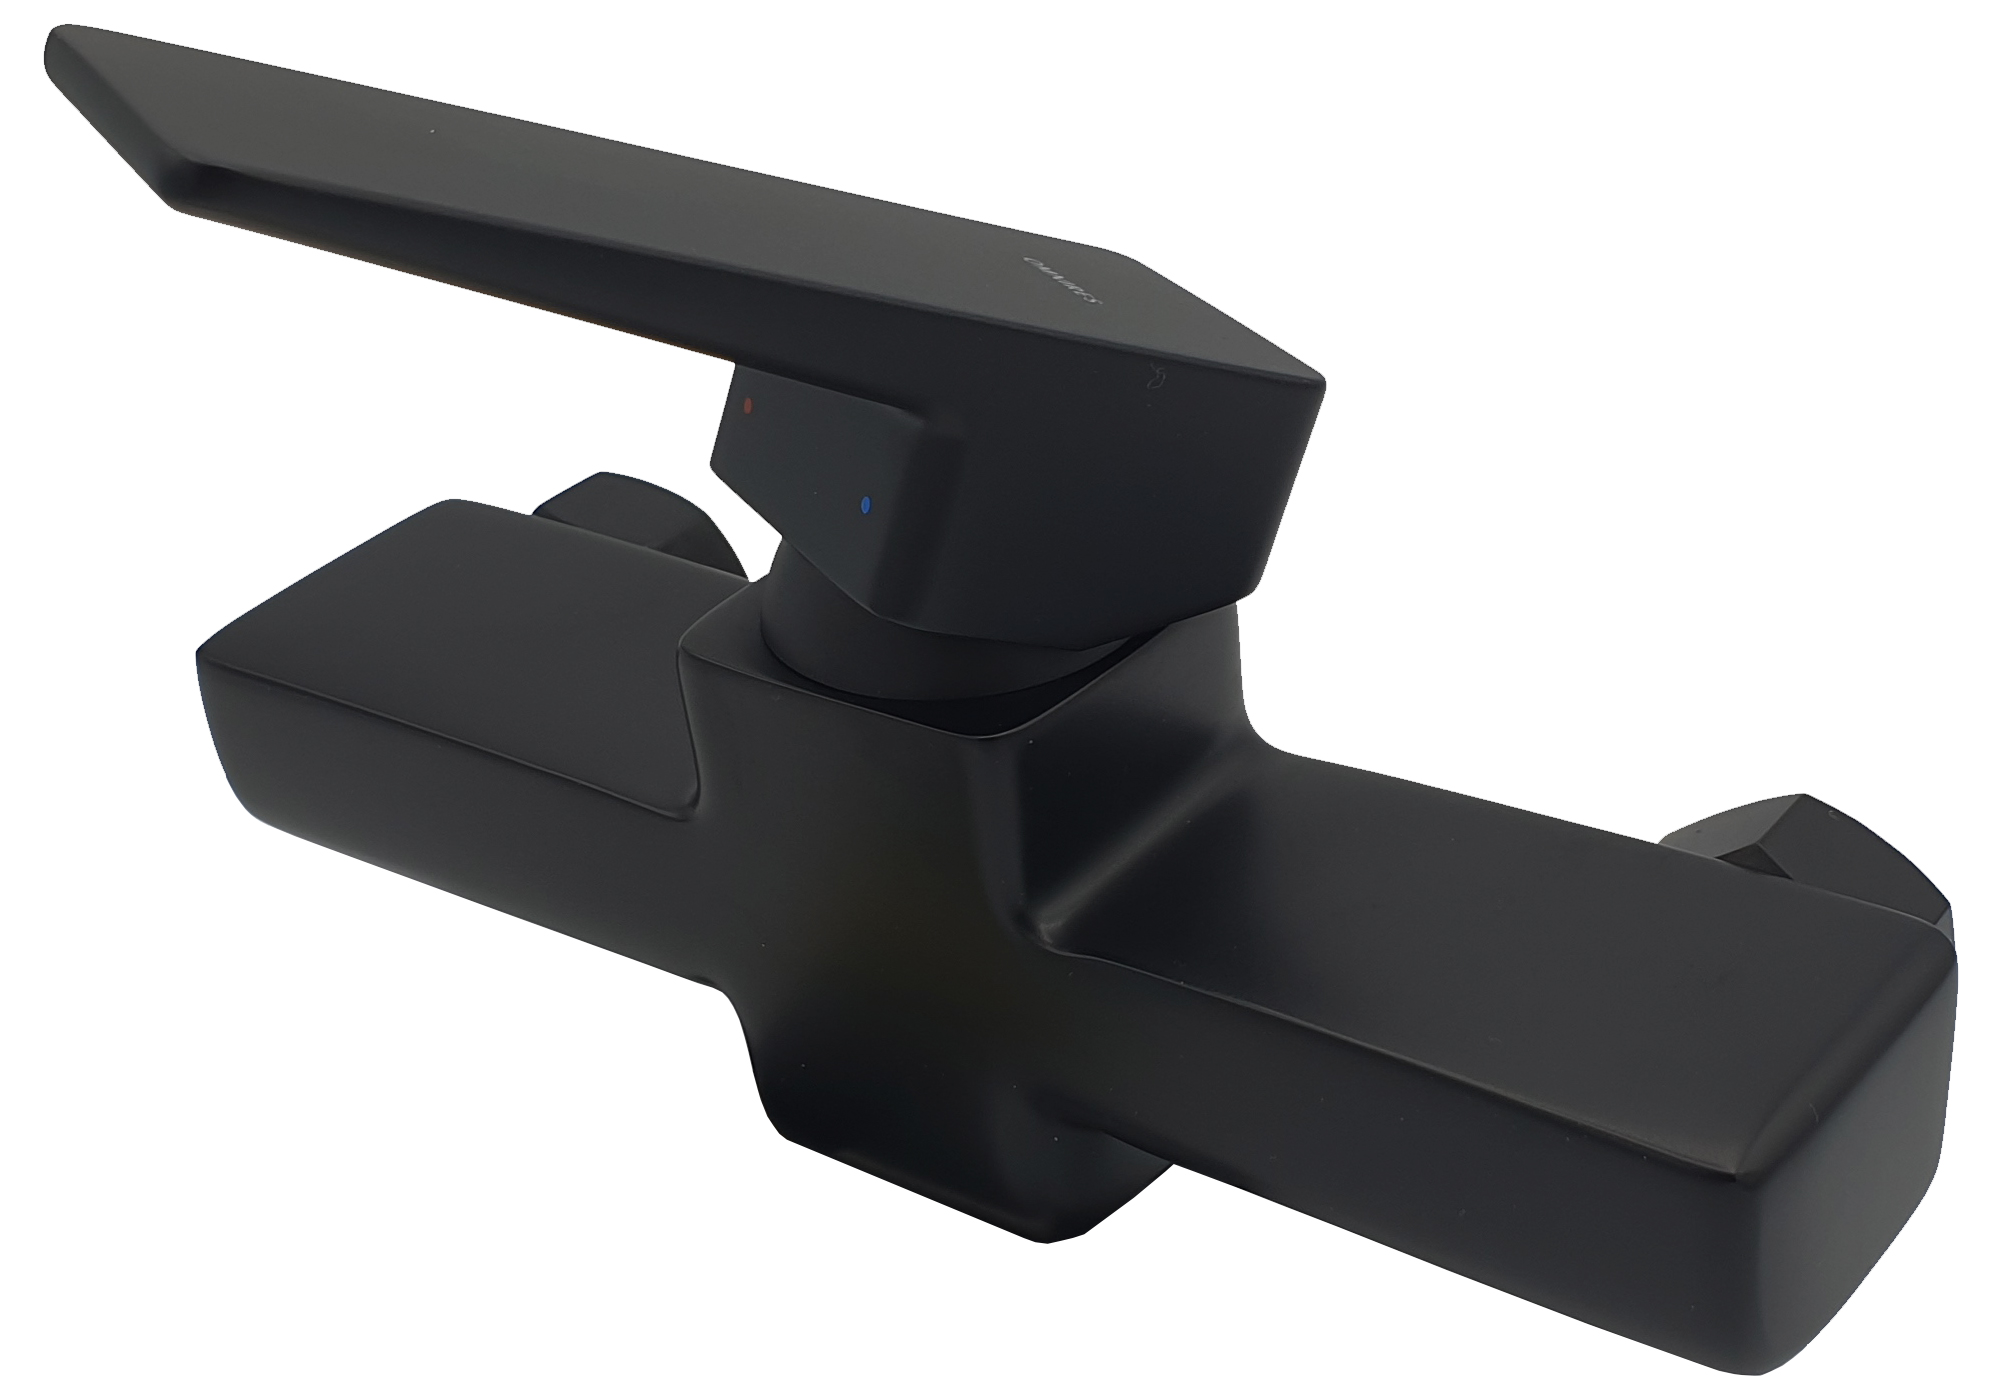 Black Shower Mixer Tap Wall Mounted Rectangle Shaped Single Lever Faucet